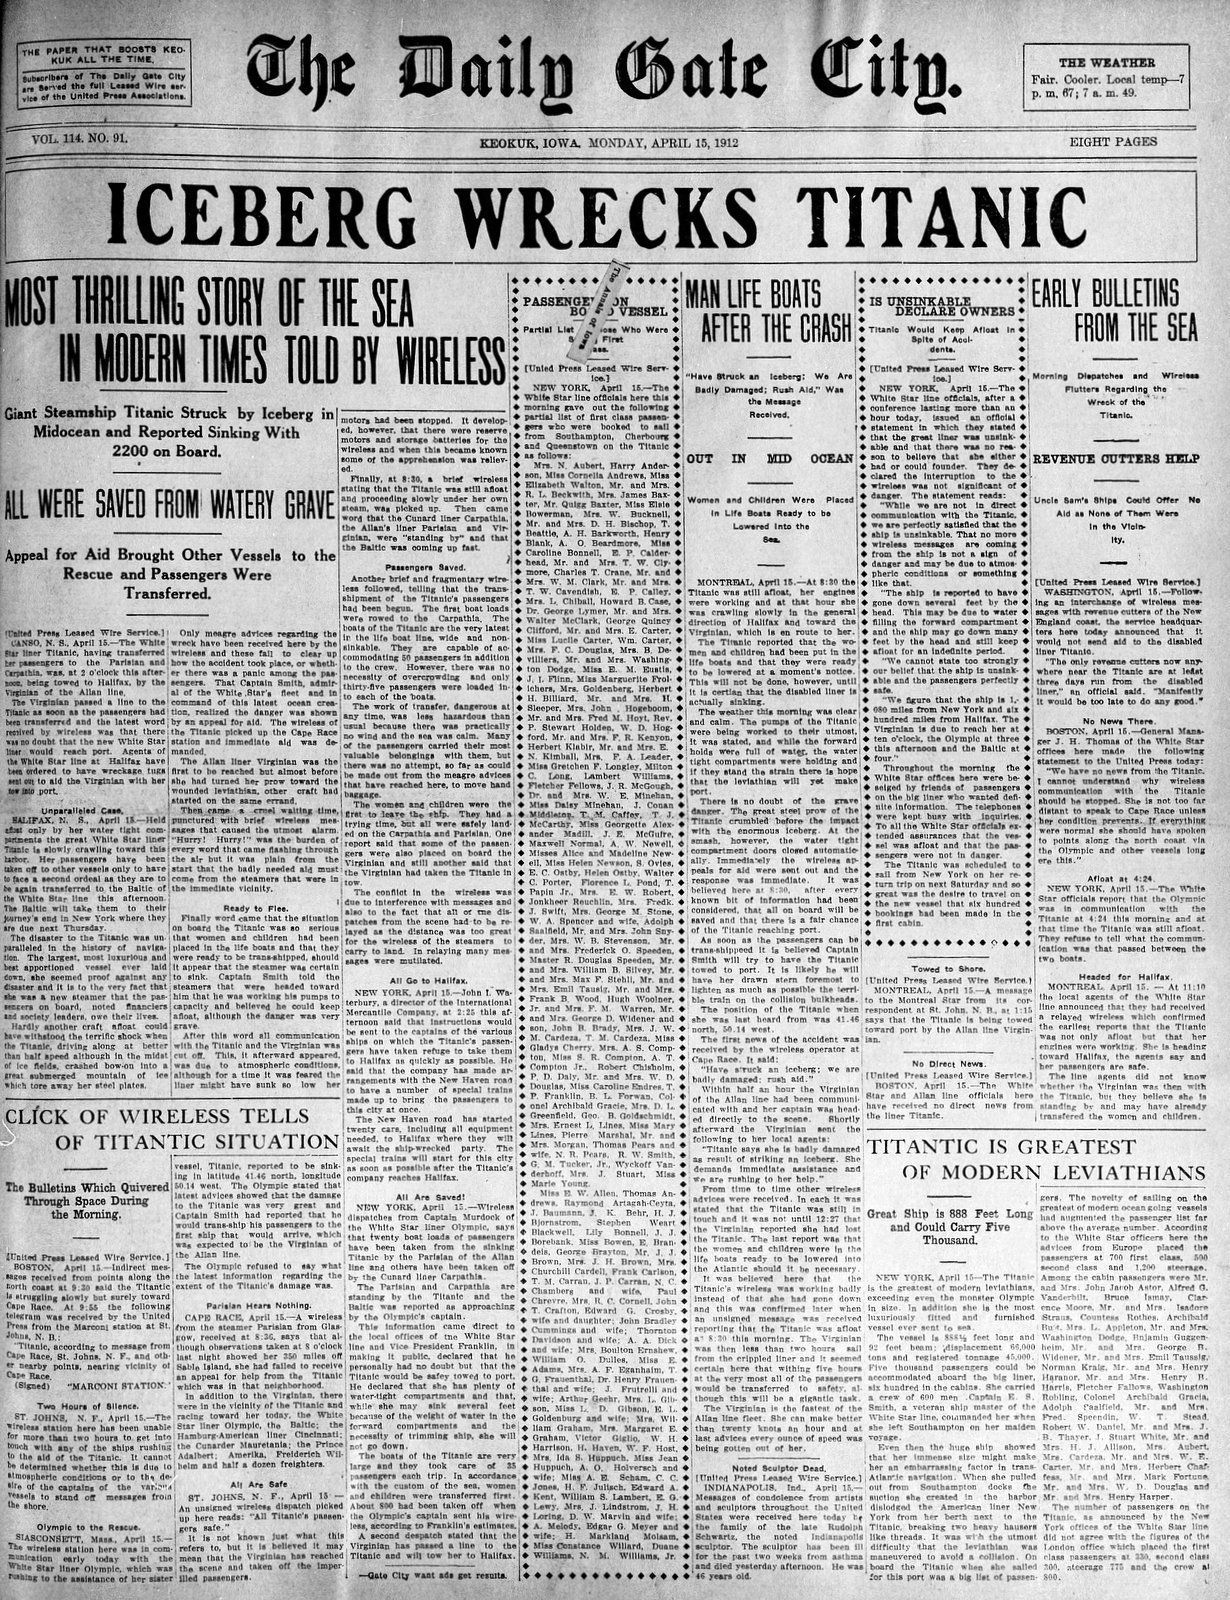 Titanic Newspaper Front Pages With The First Stories Of The Disaster On April 15 1912 Newspaper Front Pages Titanic Newspaper